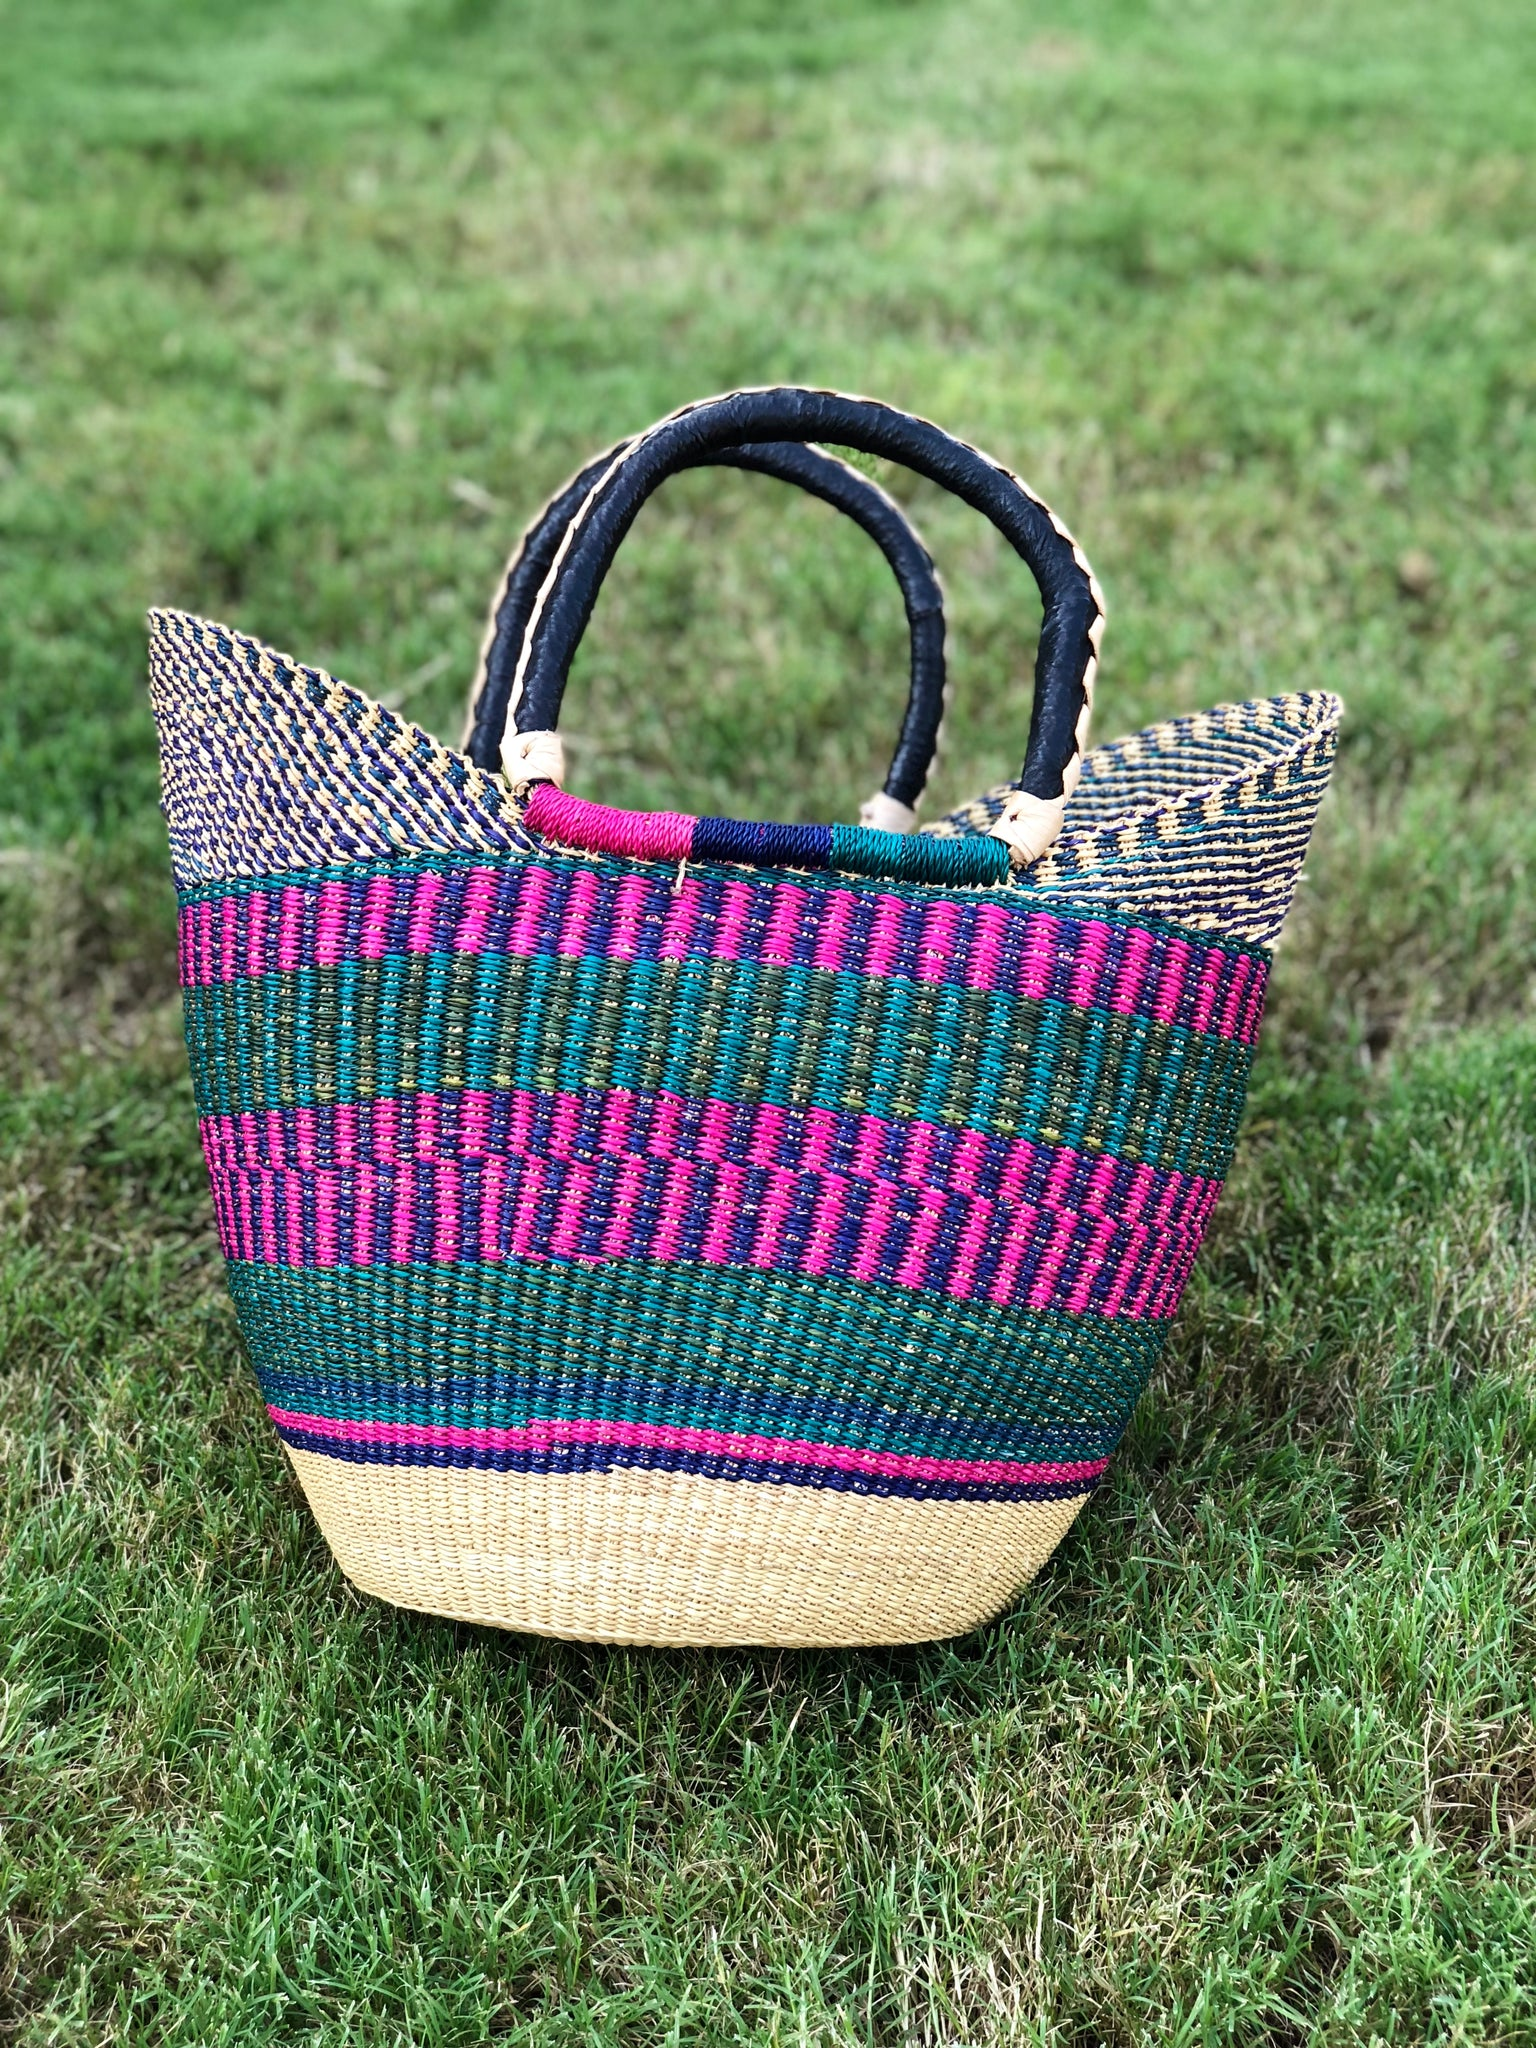 Hand Woven Jamestown Ghanaian Baskets with leather handles